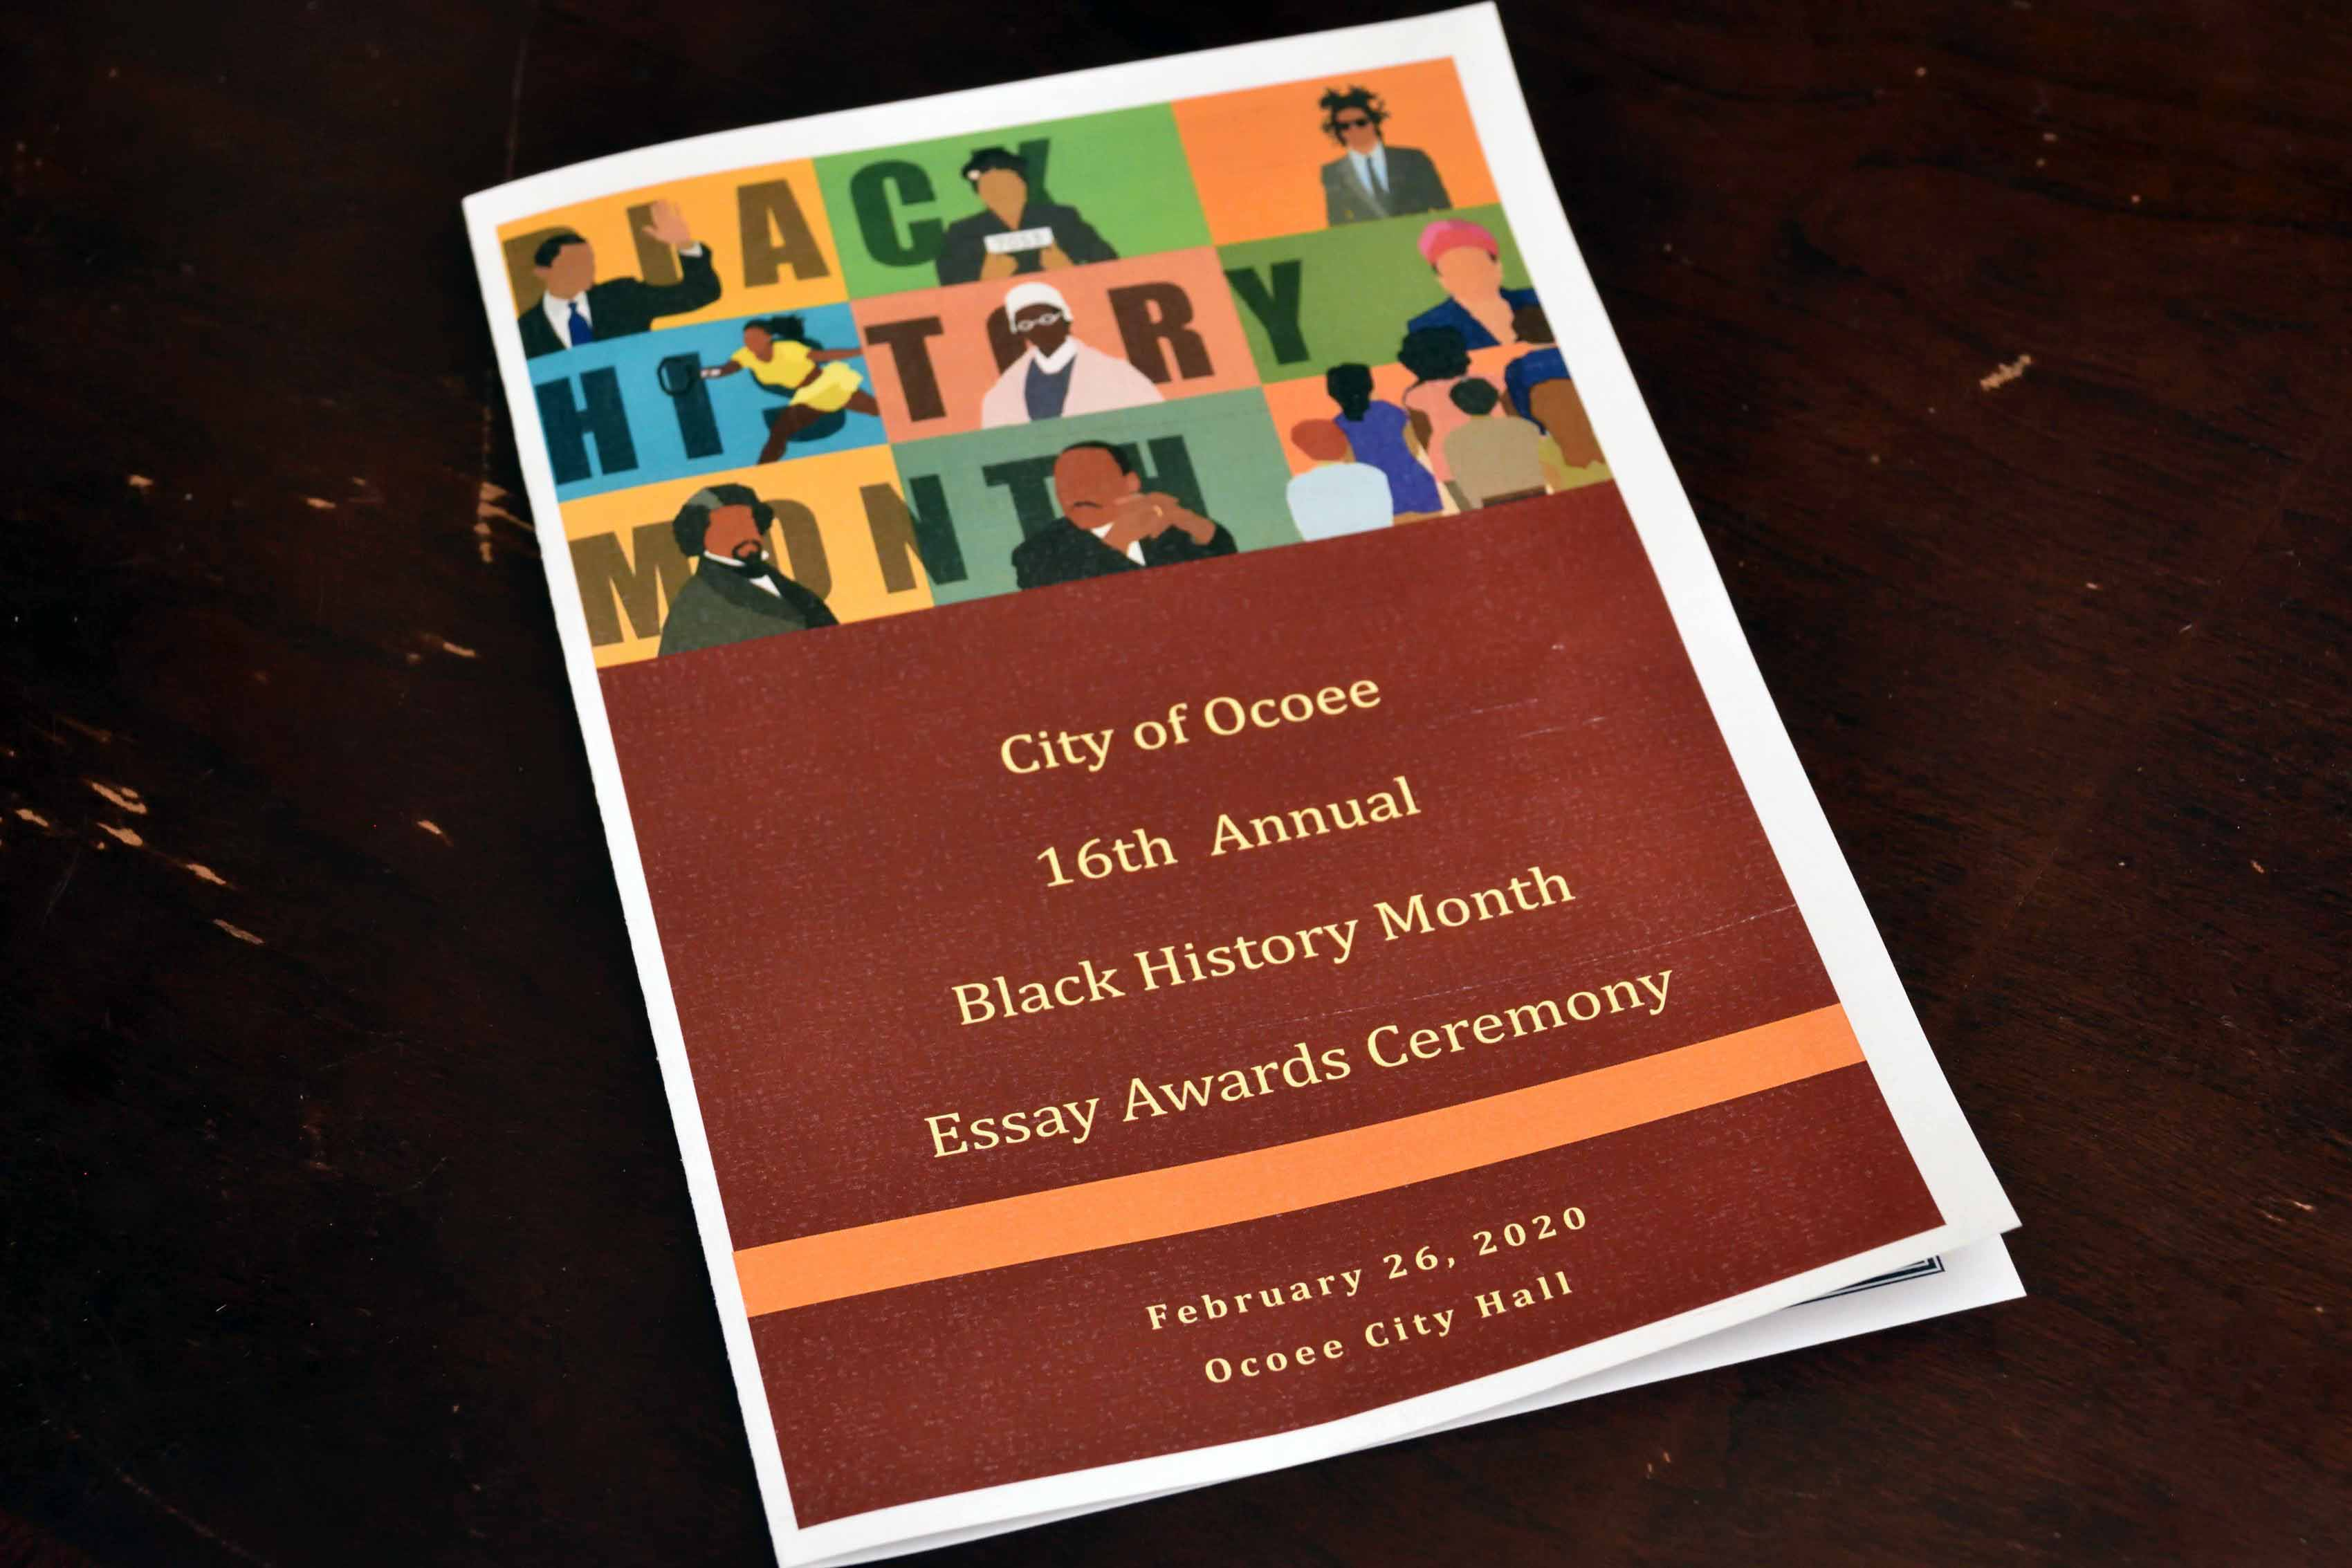 Black History Essay Awards 2-26-20 (29)